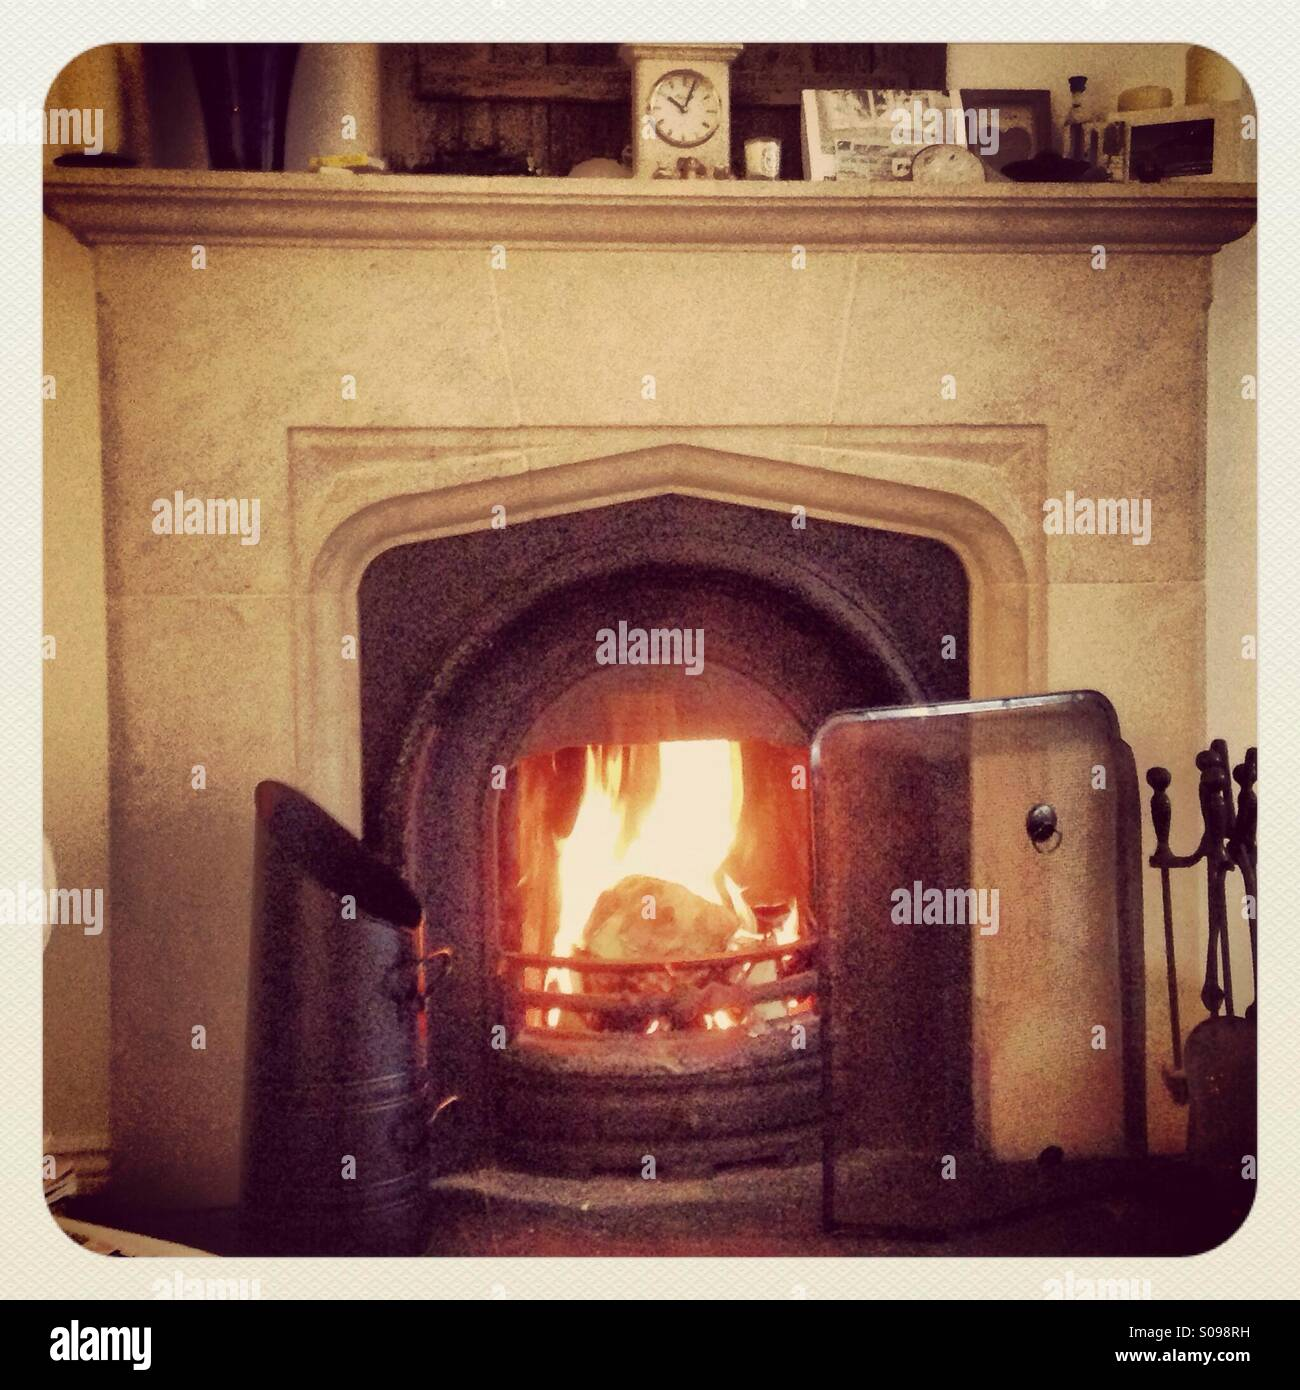 A fire is seen lit for the winter evenings. - Stock Image